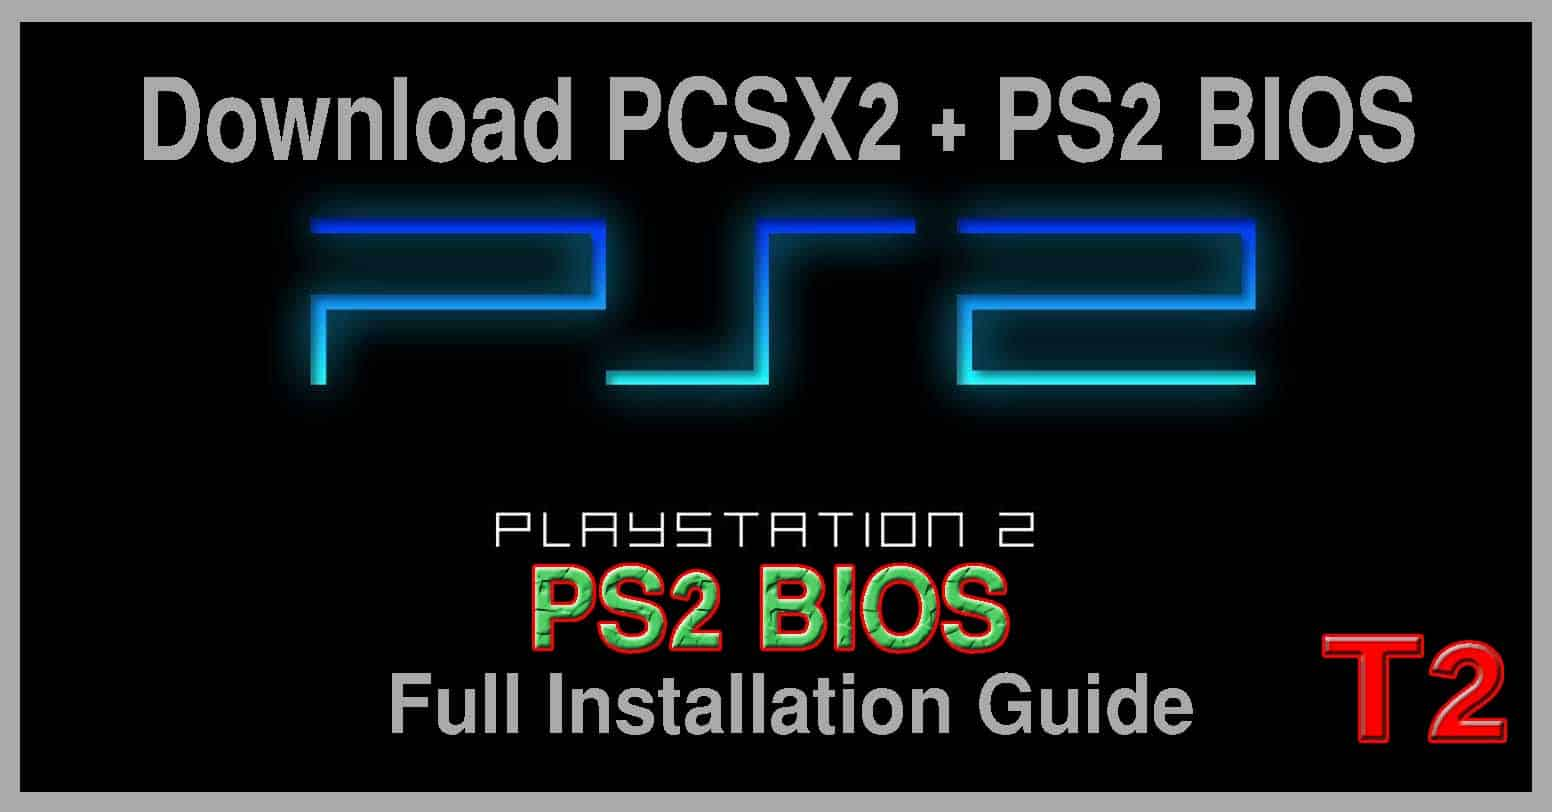 Download PS2 BIOS + PCSX2 and Full Installation Guide